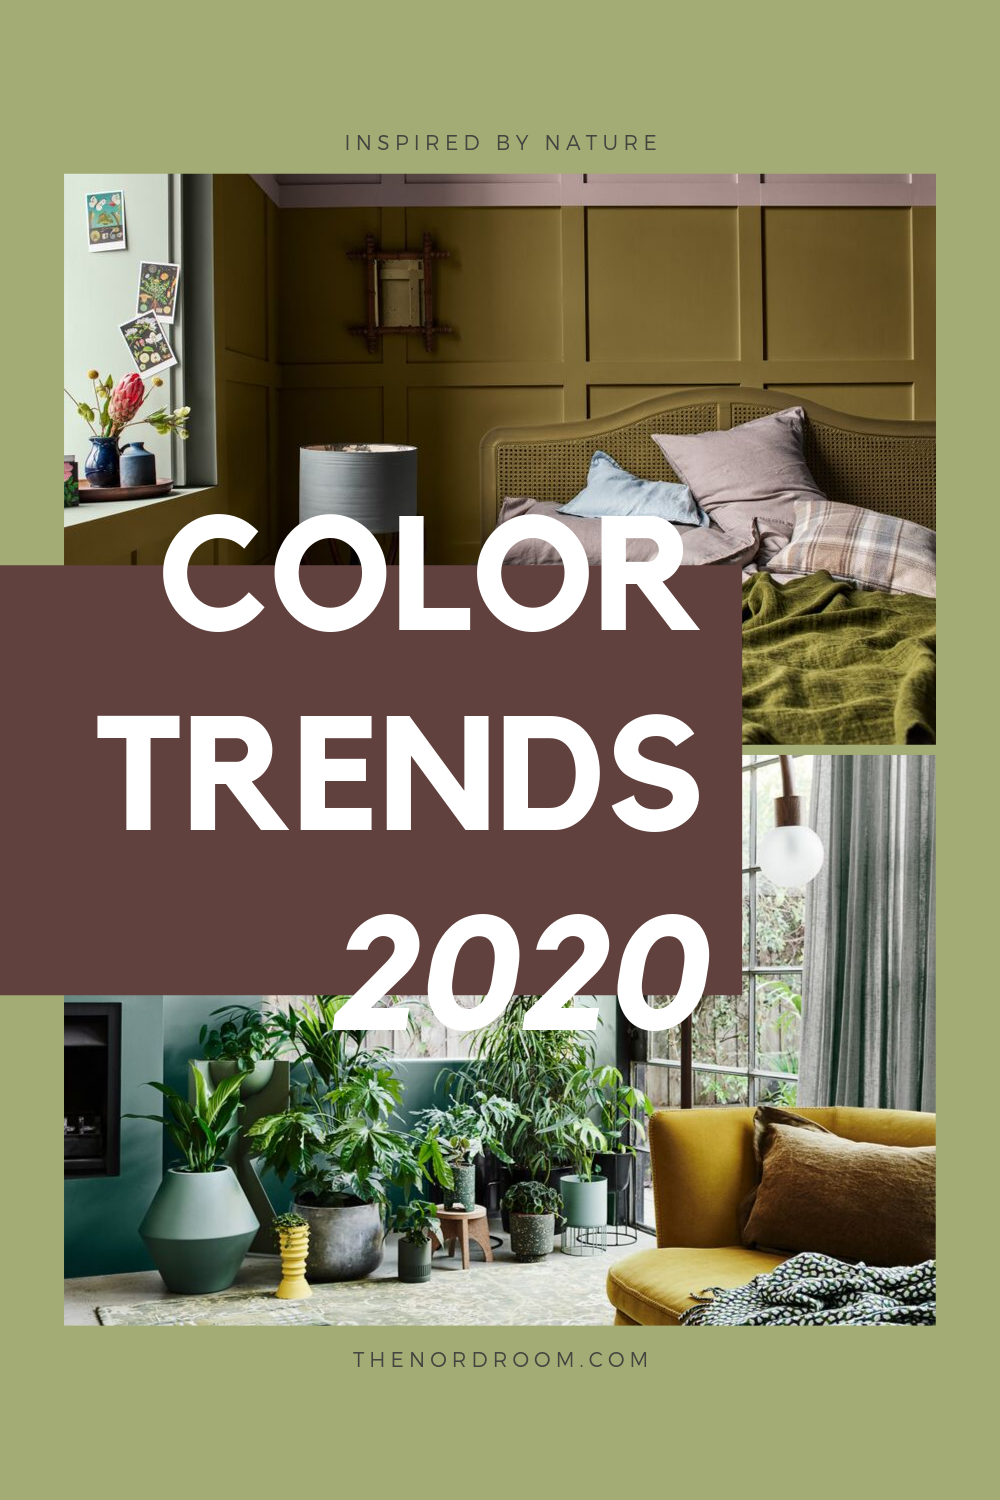 The Color Trends For 2020 Are Inspired by Nature